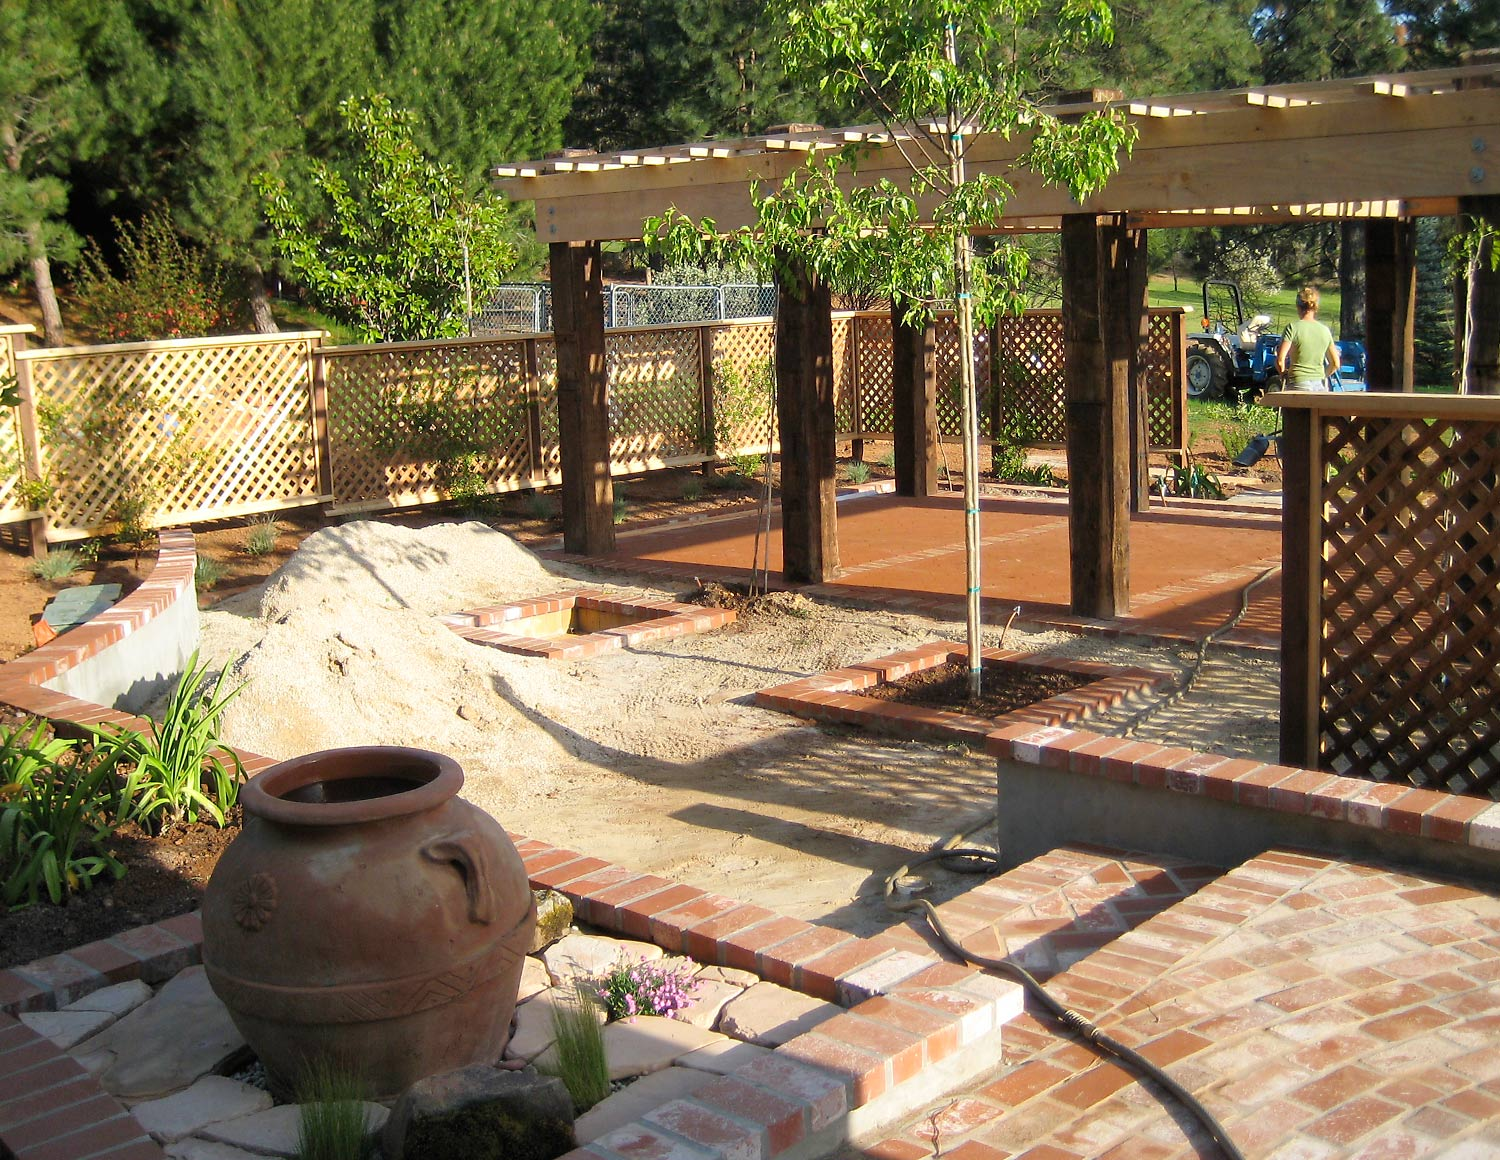 Outdoor living area under construction